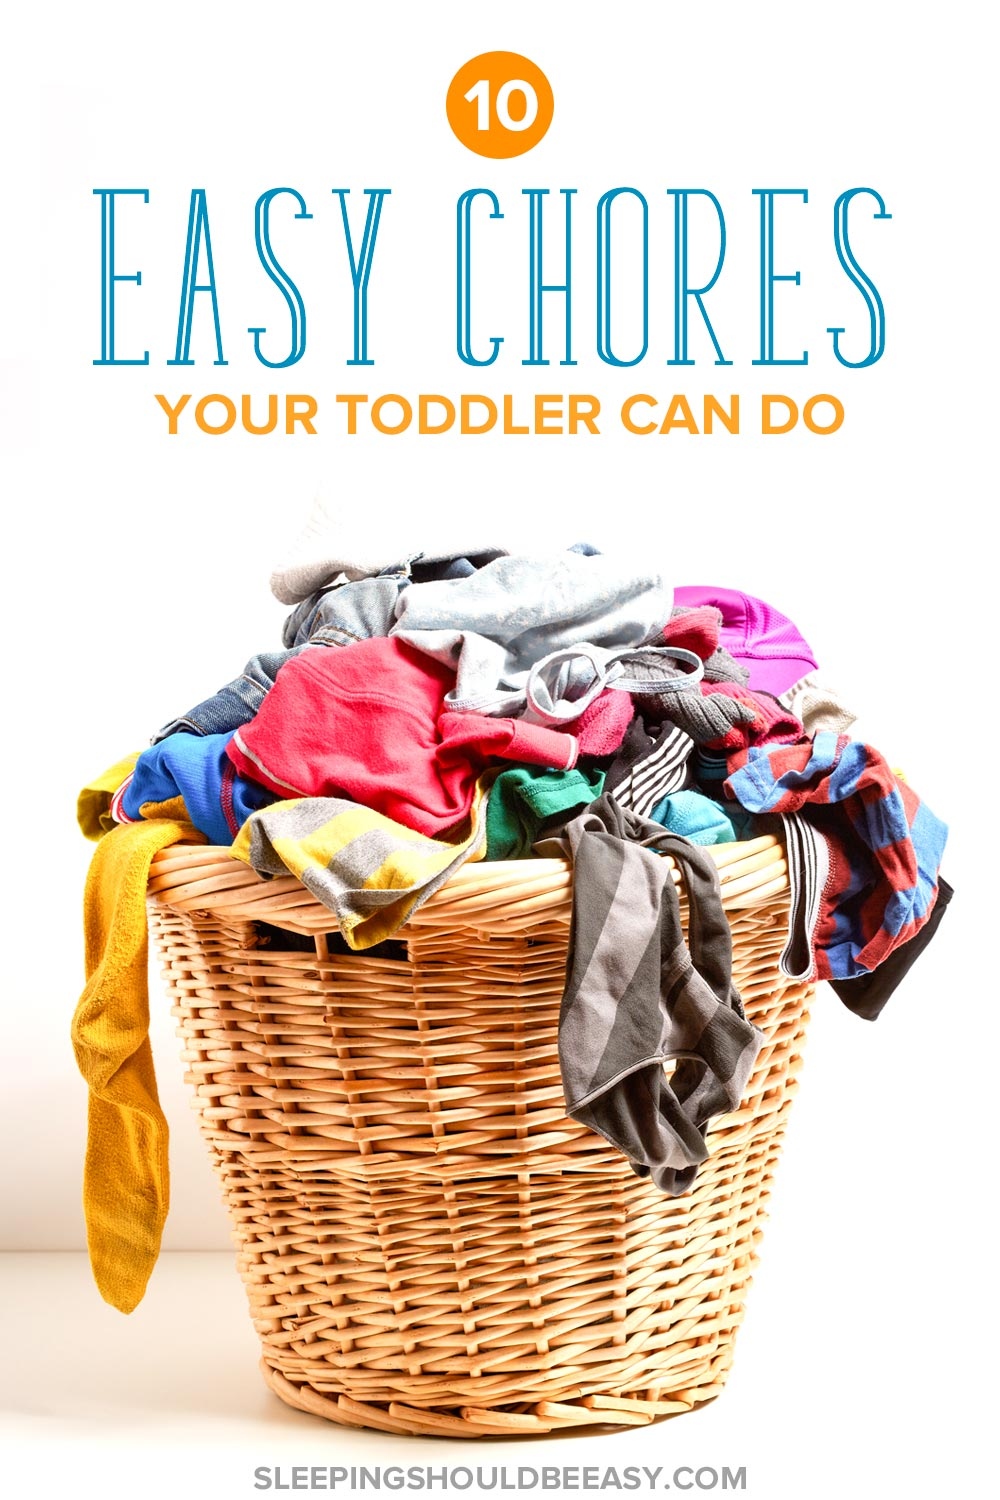 Start early with toddler chores and make them fun! Giving kids chores has many benefits and is easy to do. Below are 10 easy chores a toddler can do.